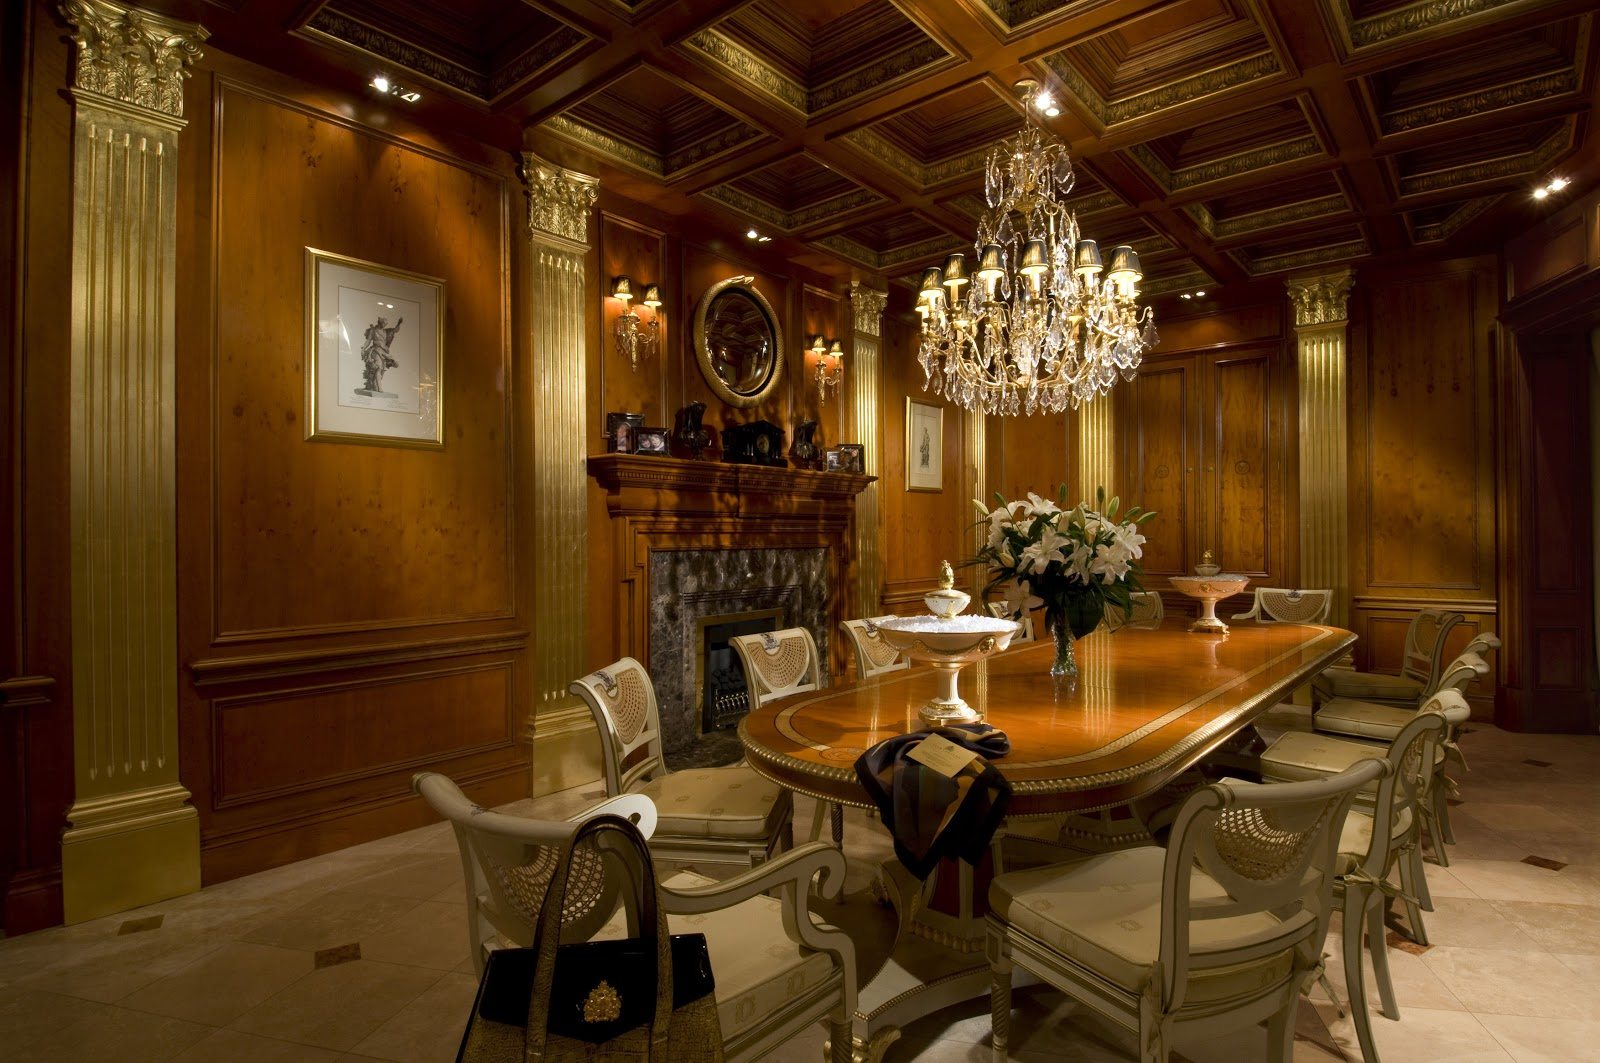 crystal dining room for luxurious impression. Architectural Paneled Dining Room In Yew With Gold-leafed Columns And Featuring The Clive Christian Fireplace. Empire Table Gold Crystal For Luxurious Impression